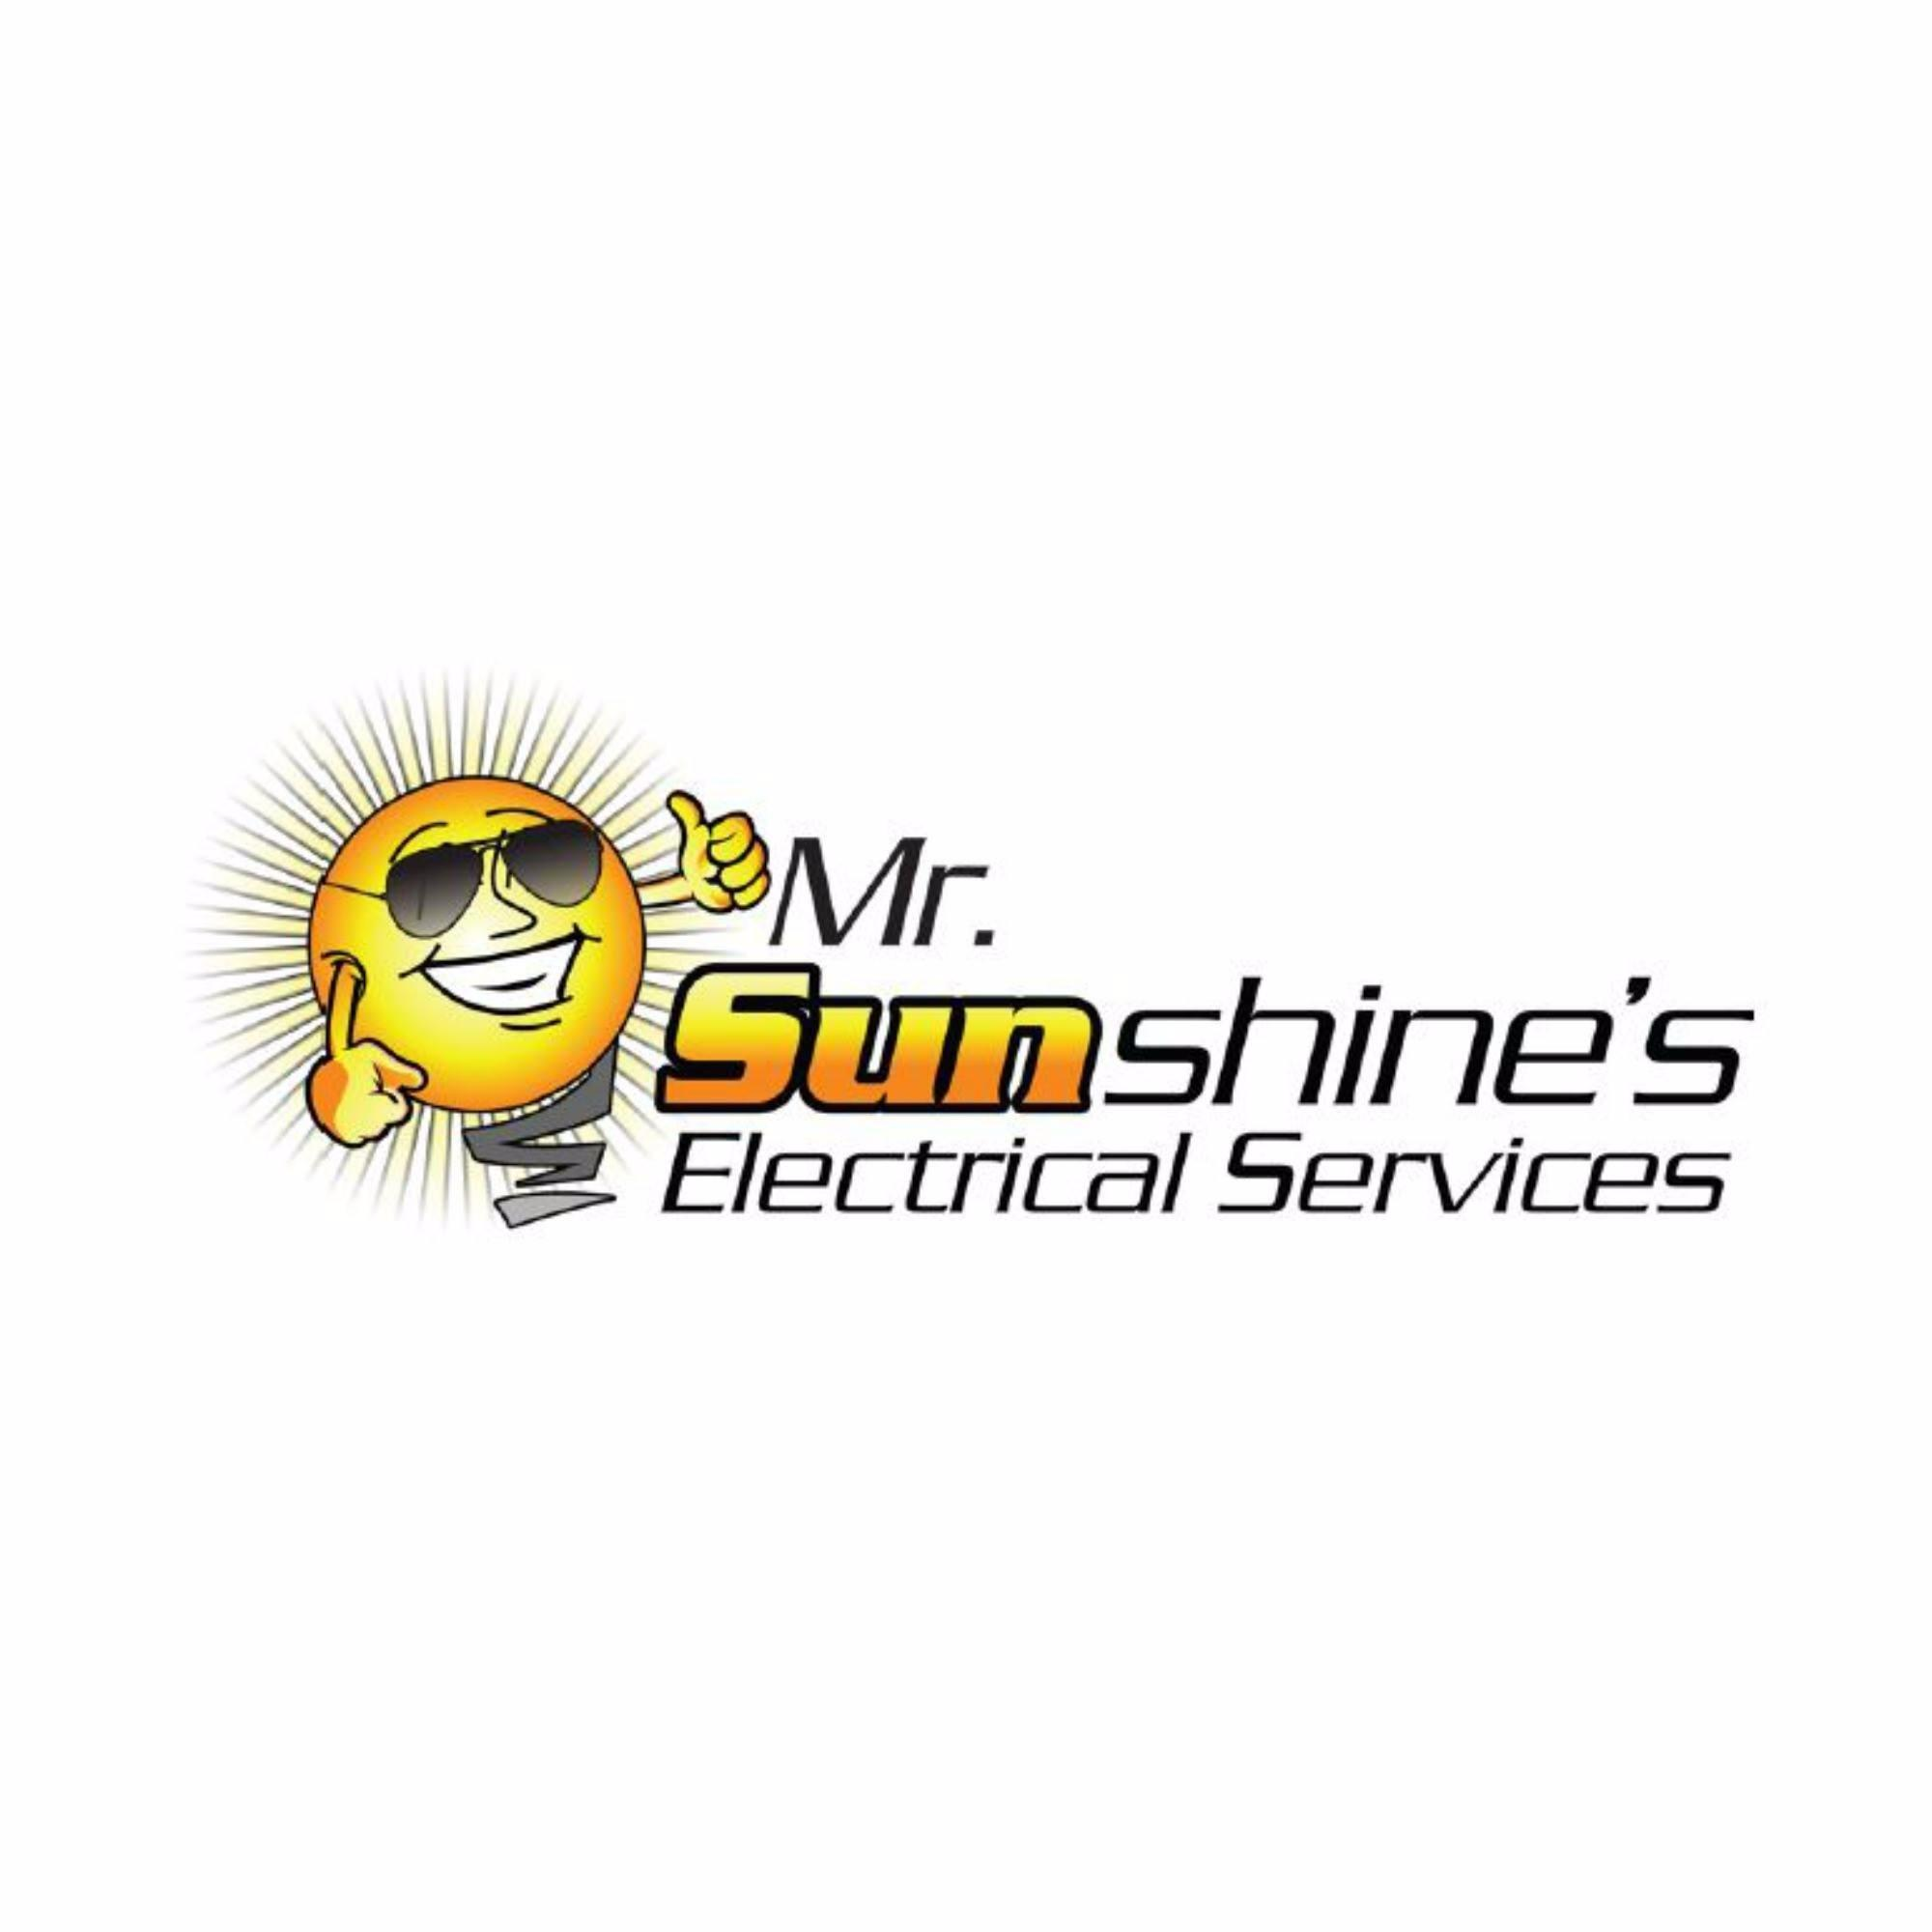 Mr. Sunshine's Electrical Services